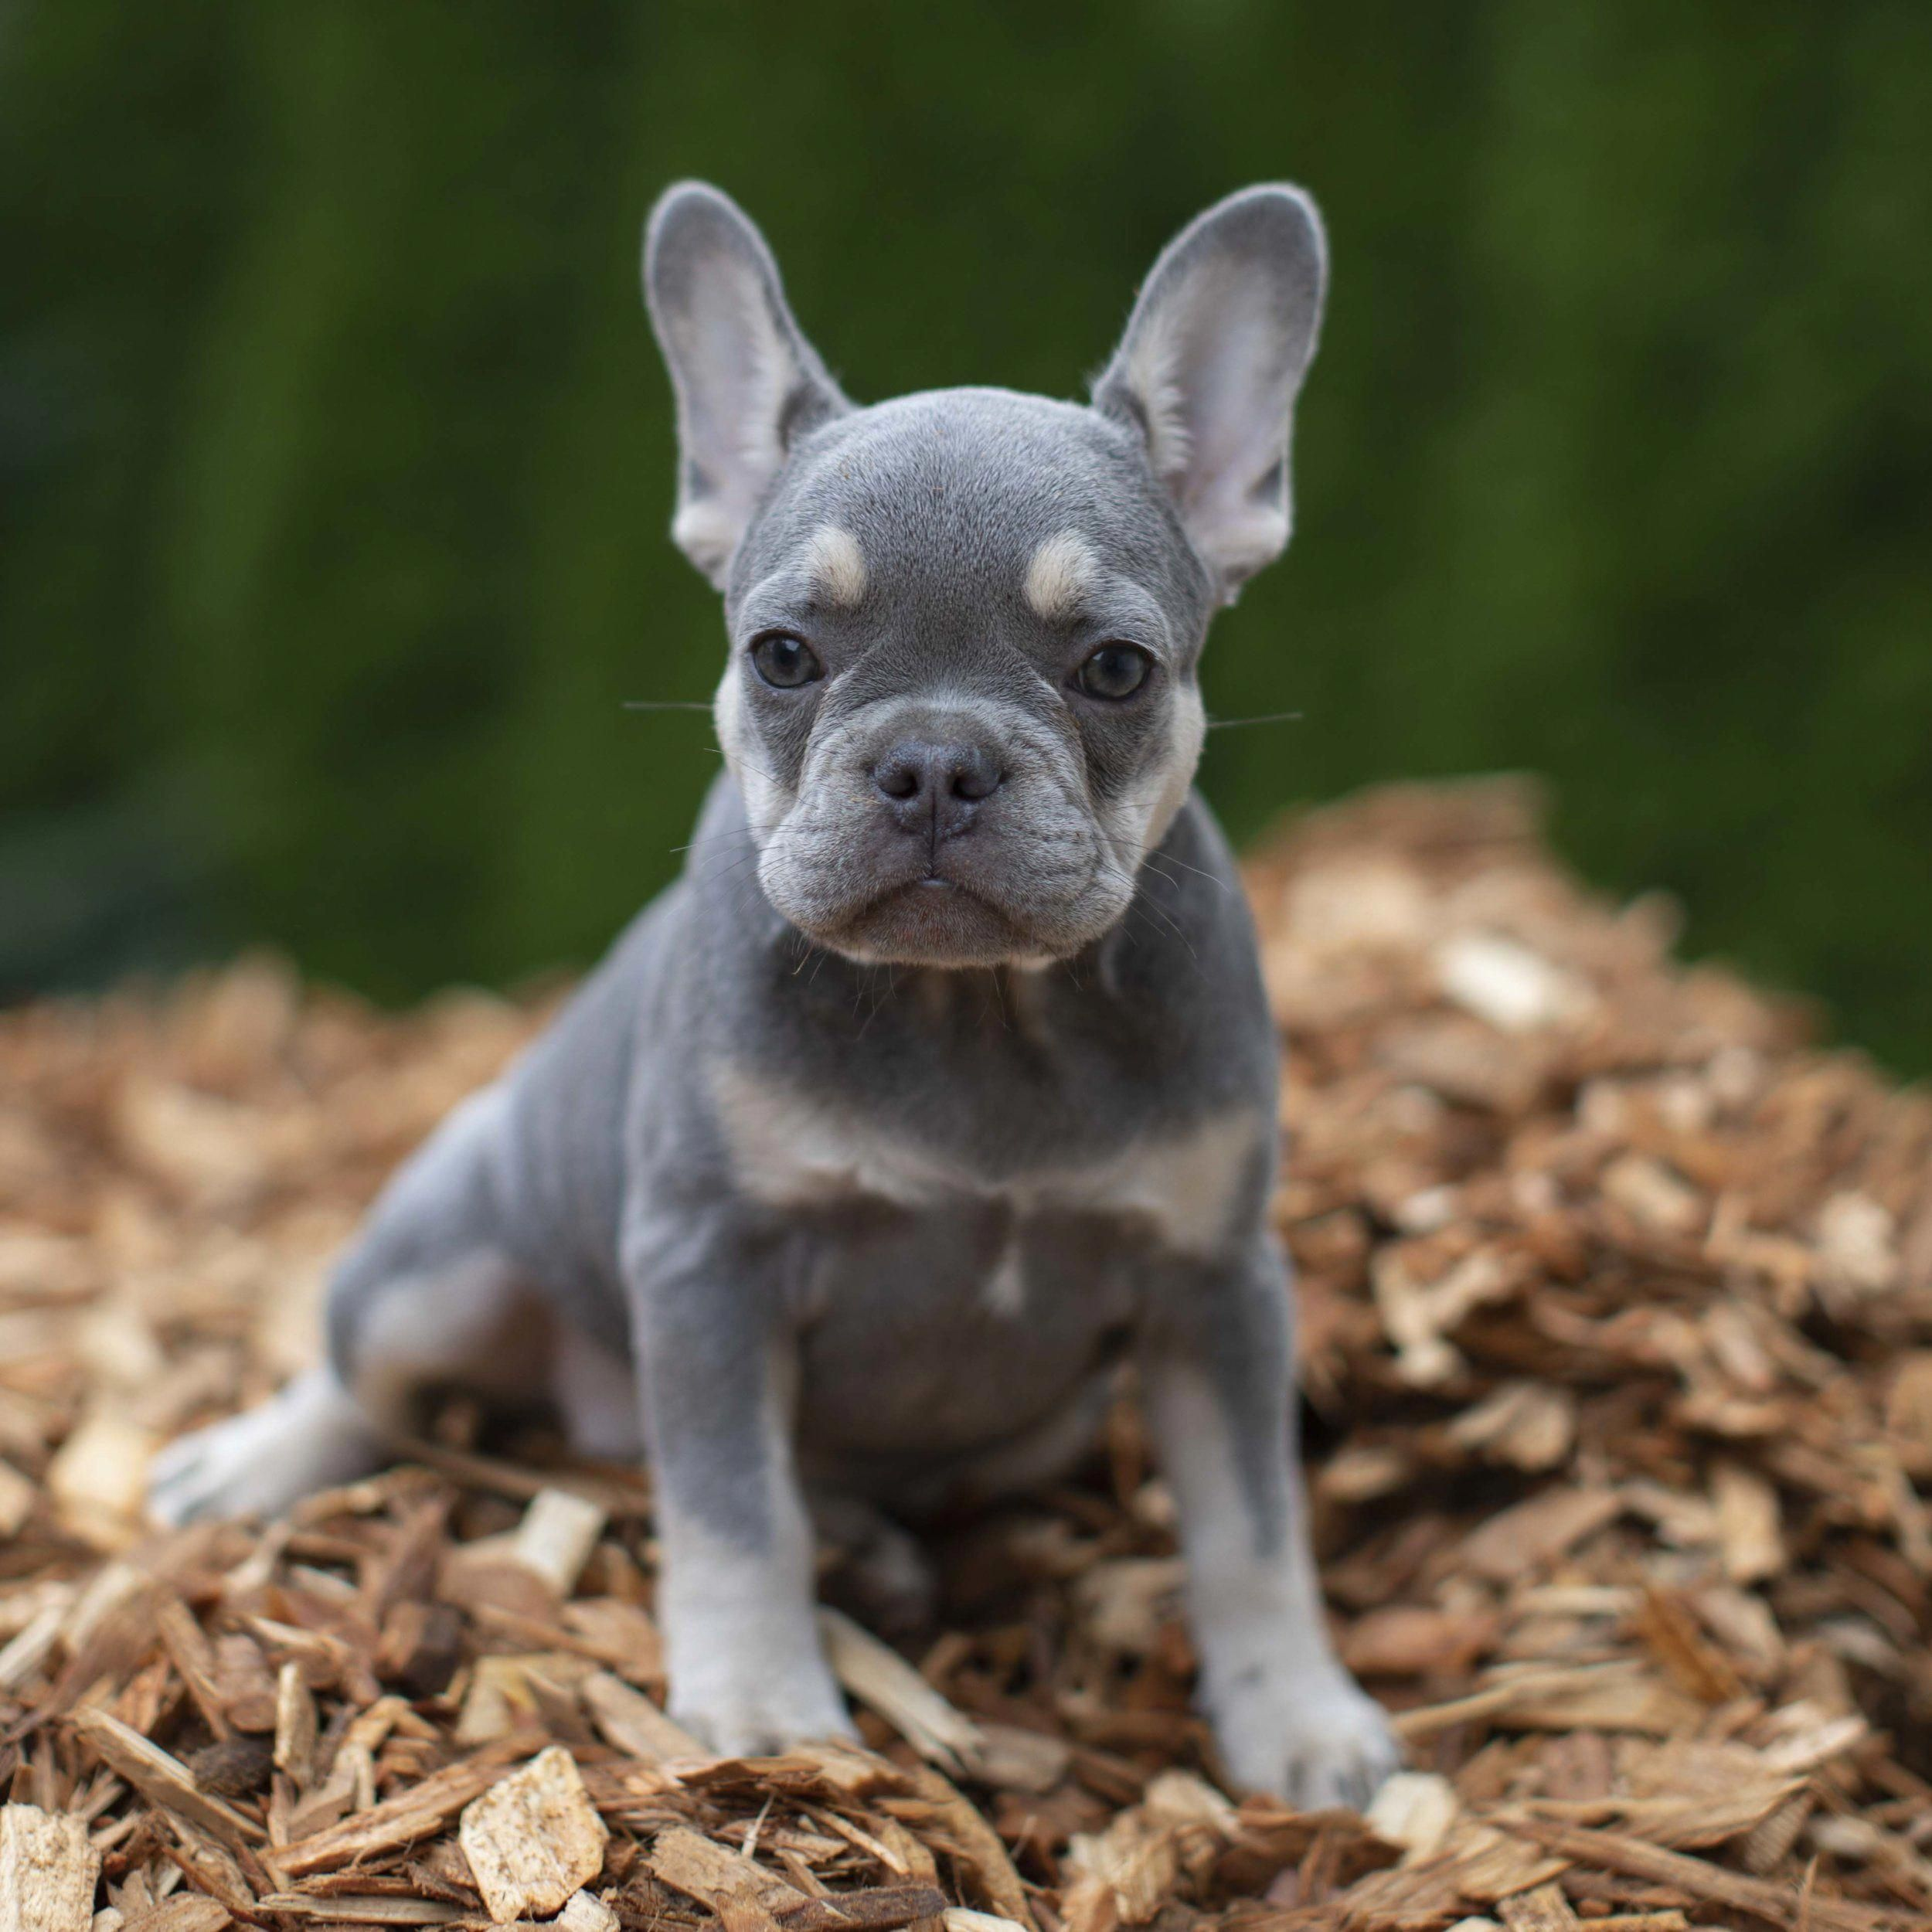 Lilac And Tan Female French Bulldog Puppy Nw Frenchies Washington State Walterthefrenchbu French Bulldog Funny French Bulldog Puppies French Bulldog Puppy